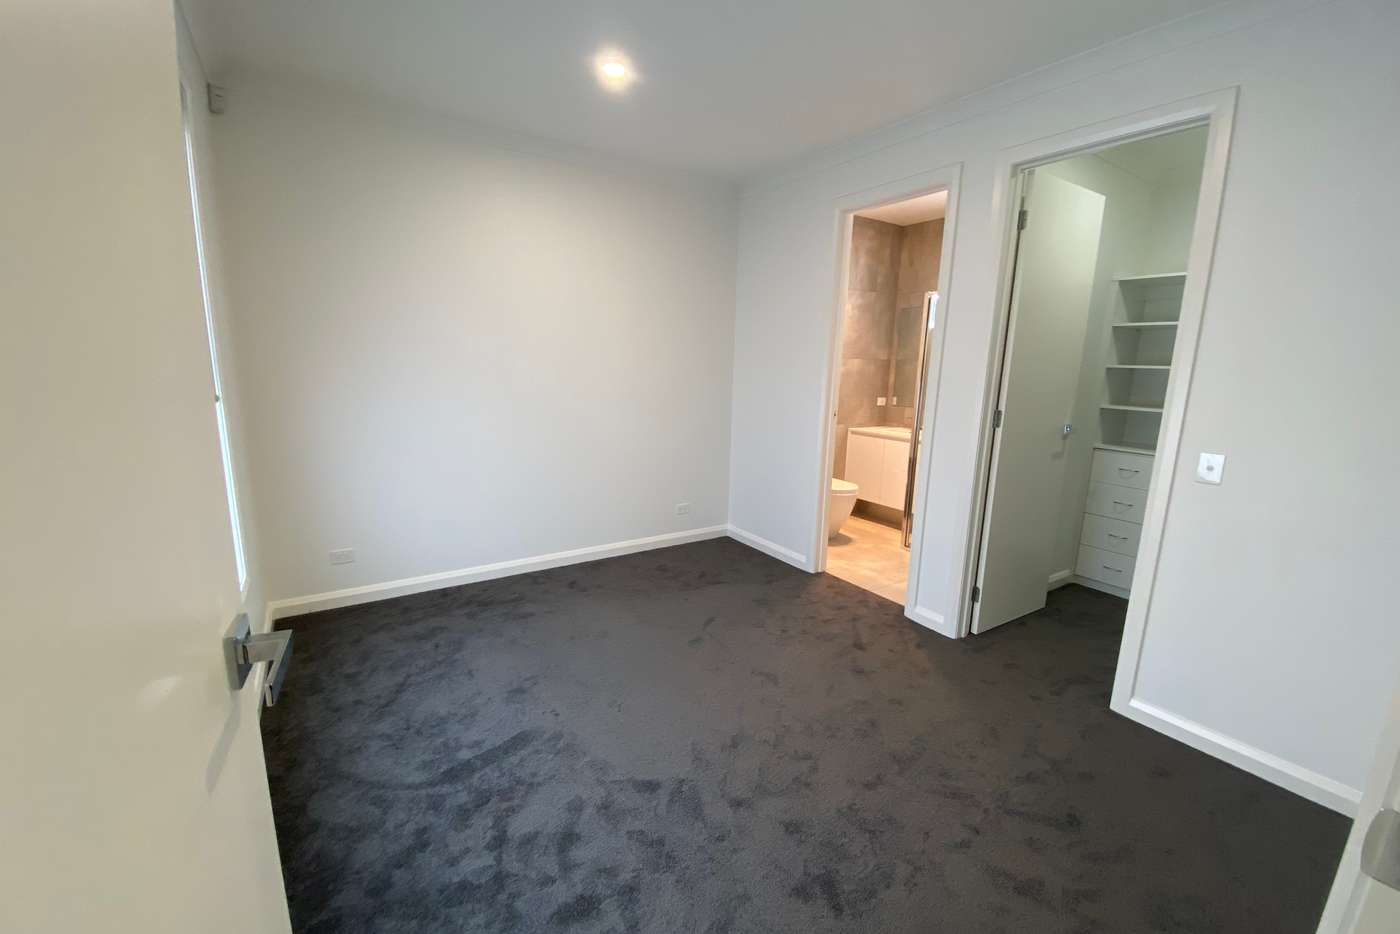 Sixth view of Homely unit listing, 3/107 Bowes Avenue, Airport West VIC 3042